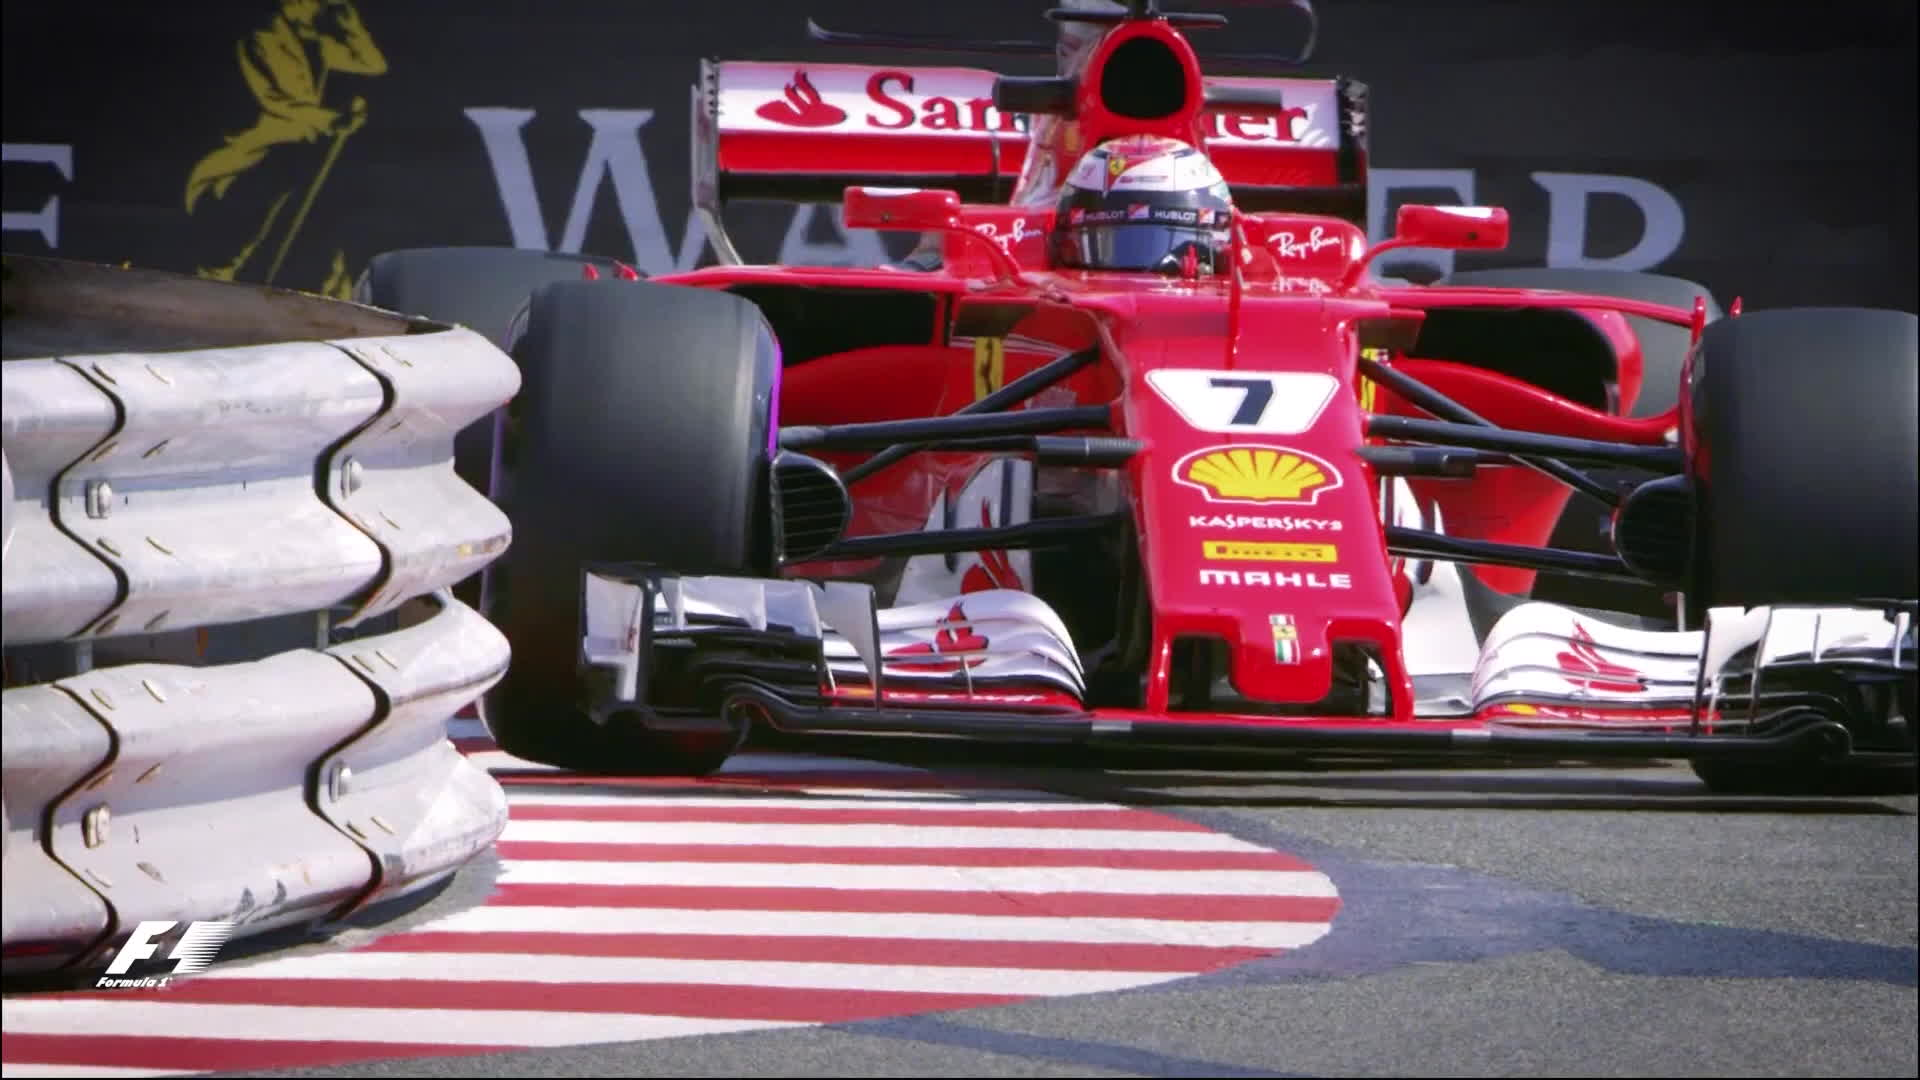 f1, formula 1, formula one, 2017 Monaco Grand Prix: FP1 Highlights GIFs